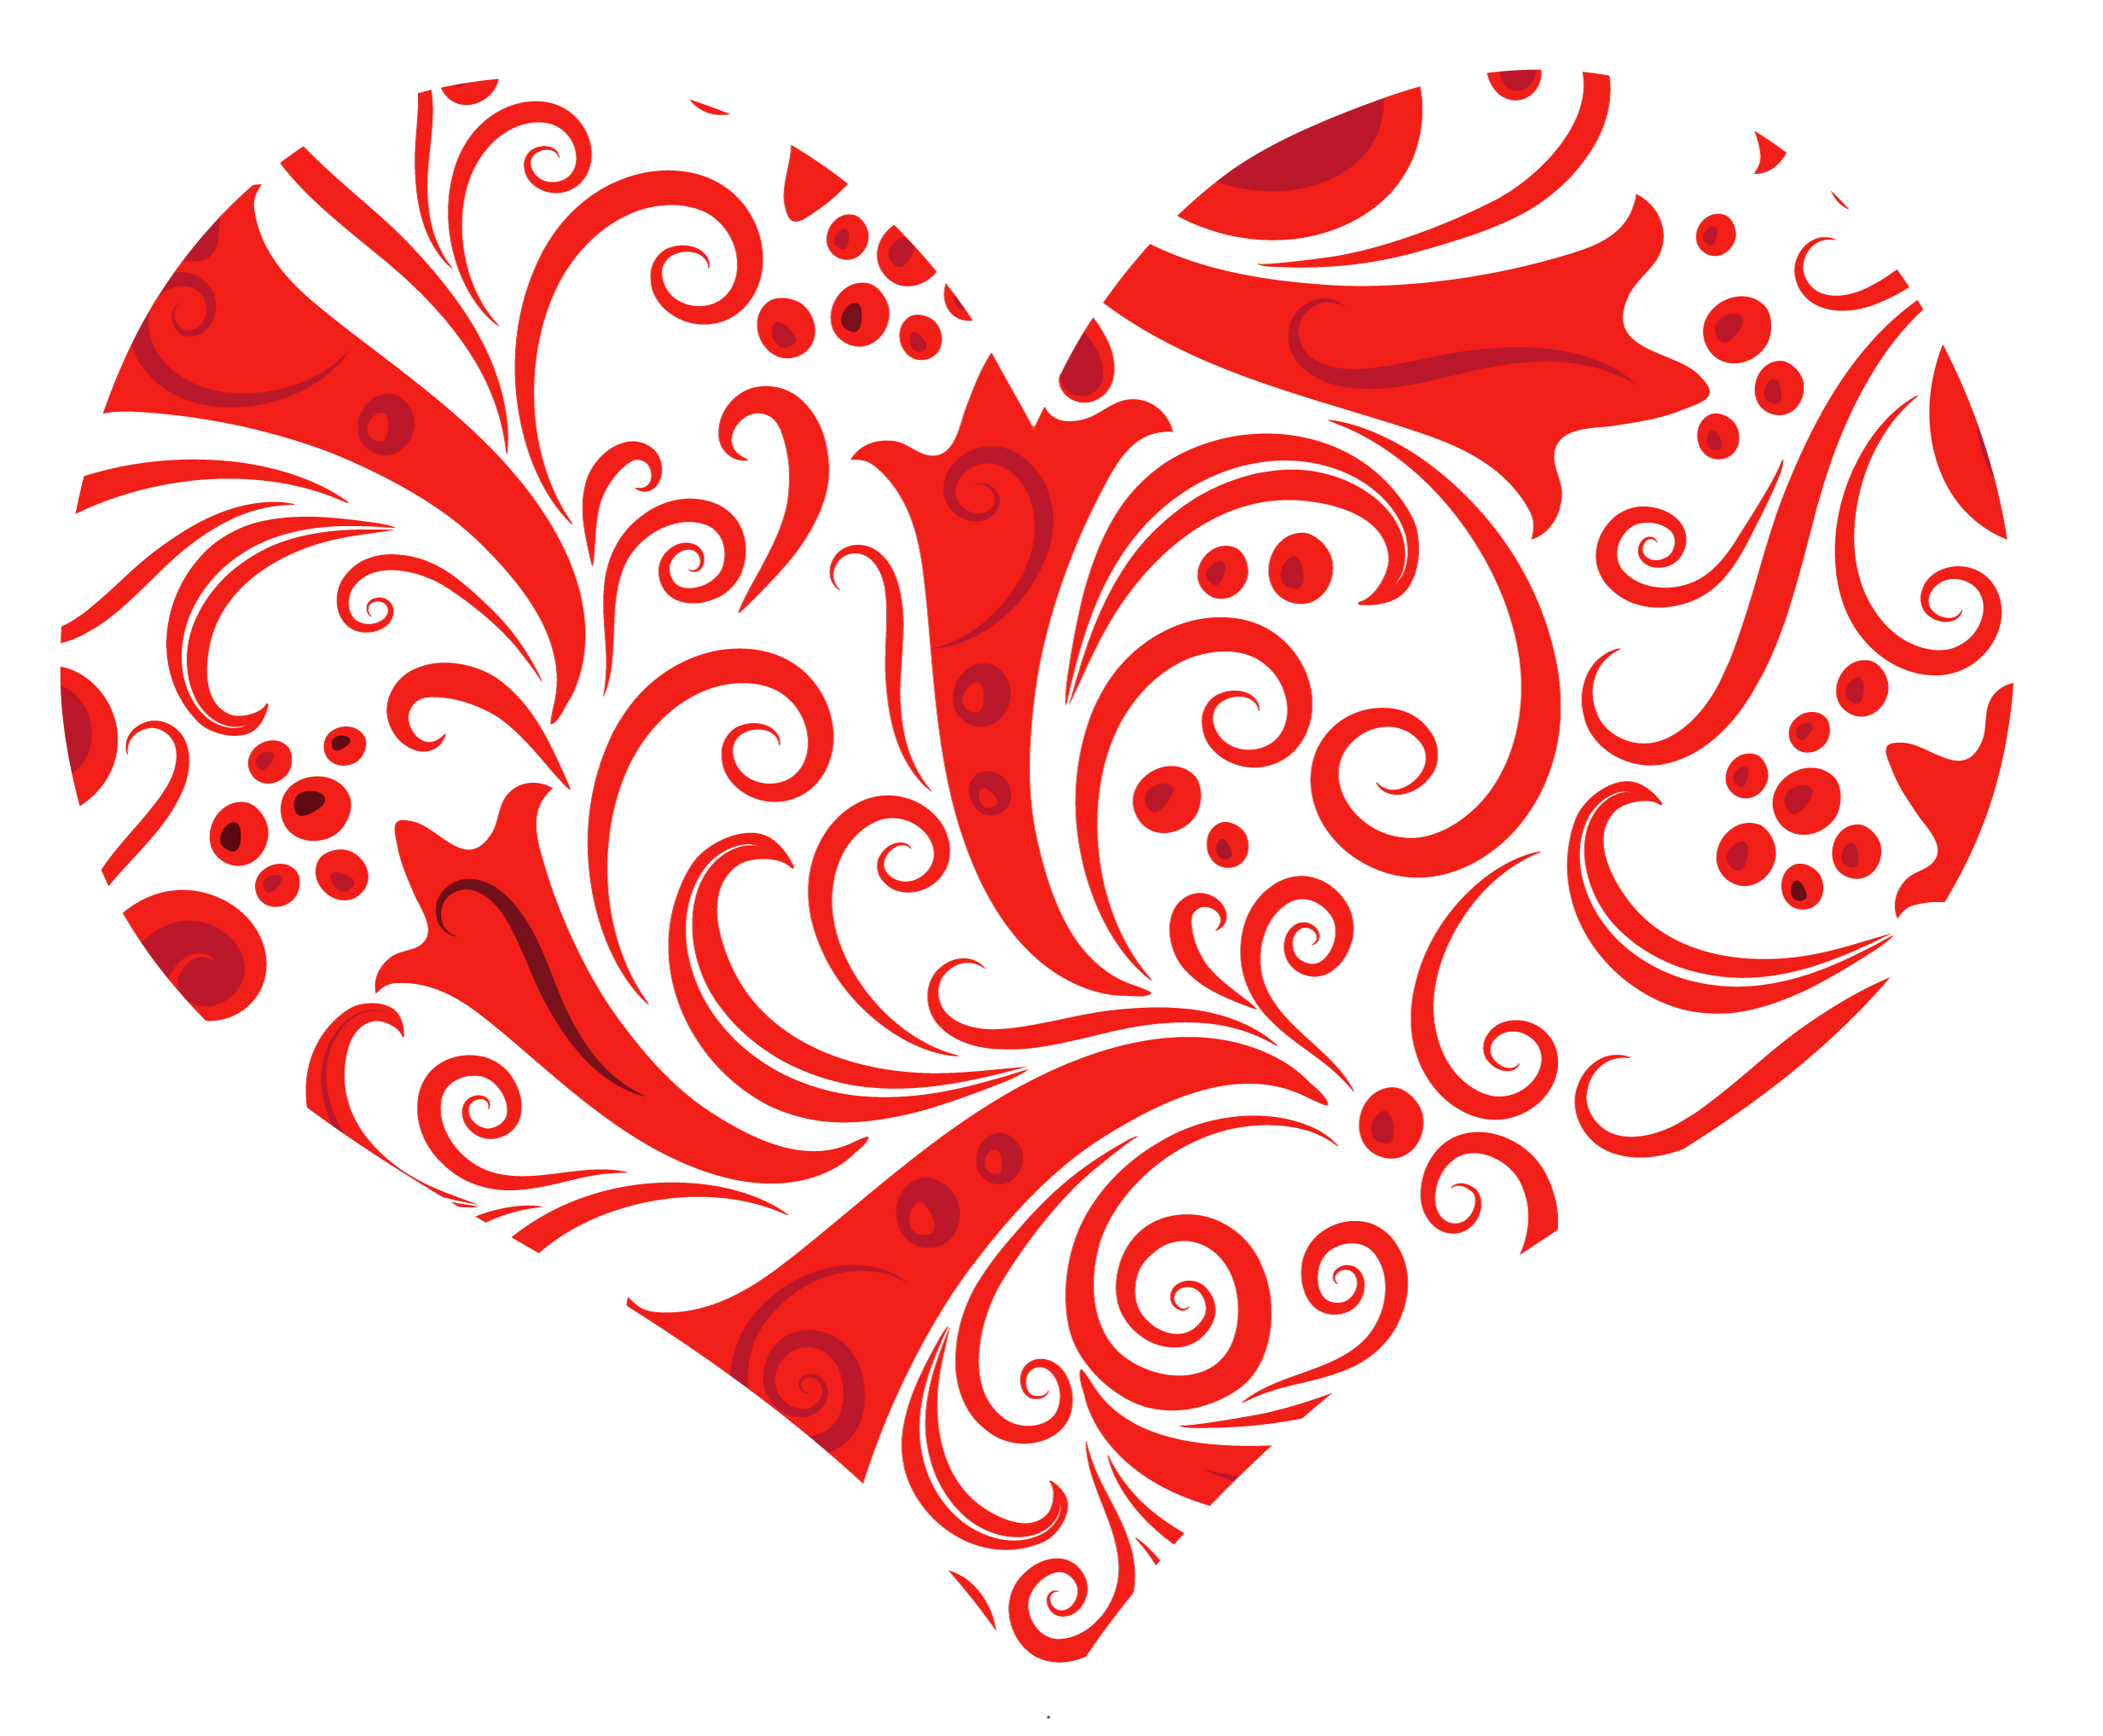 Transparent Heart Ornament PNG Clipart.